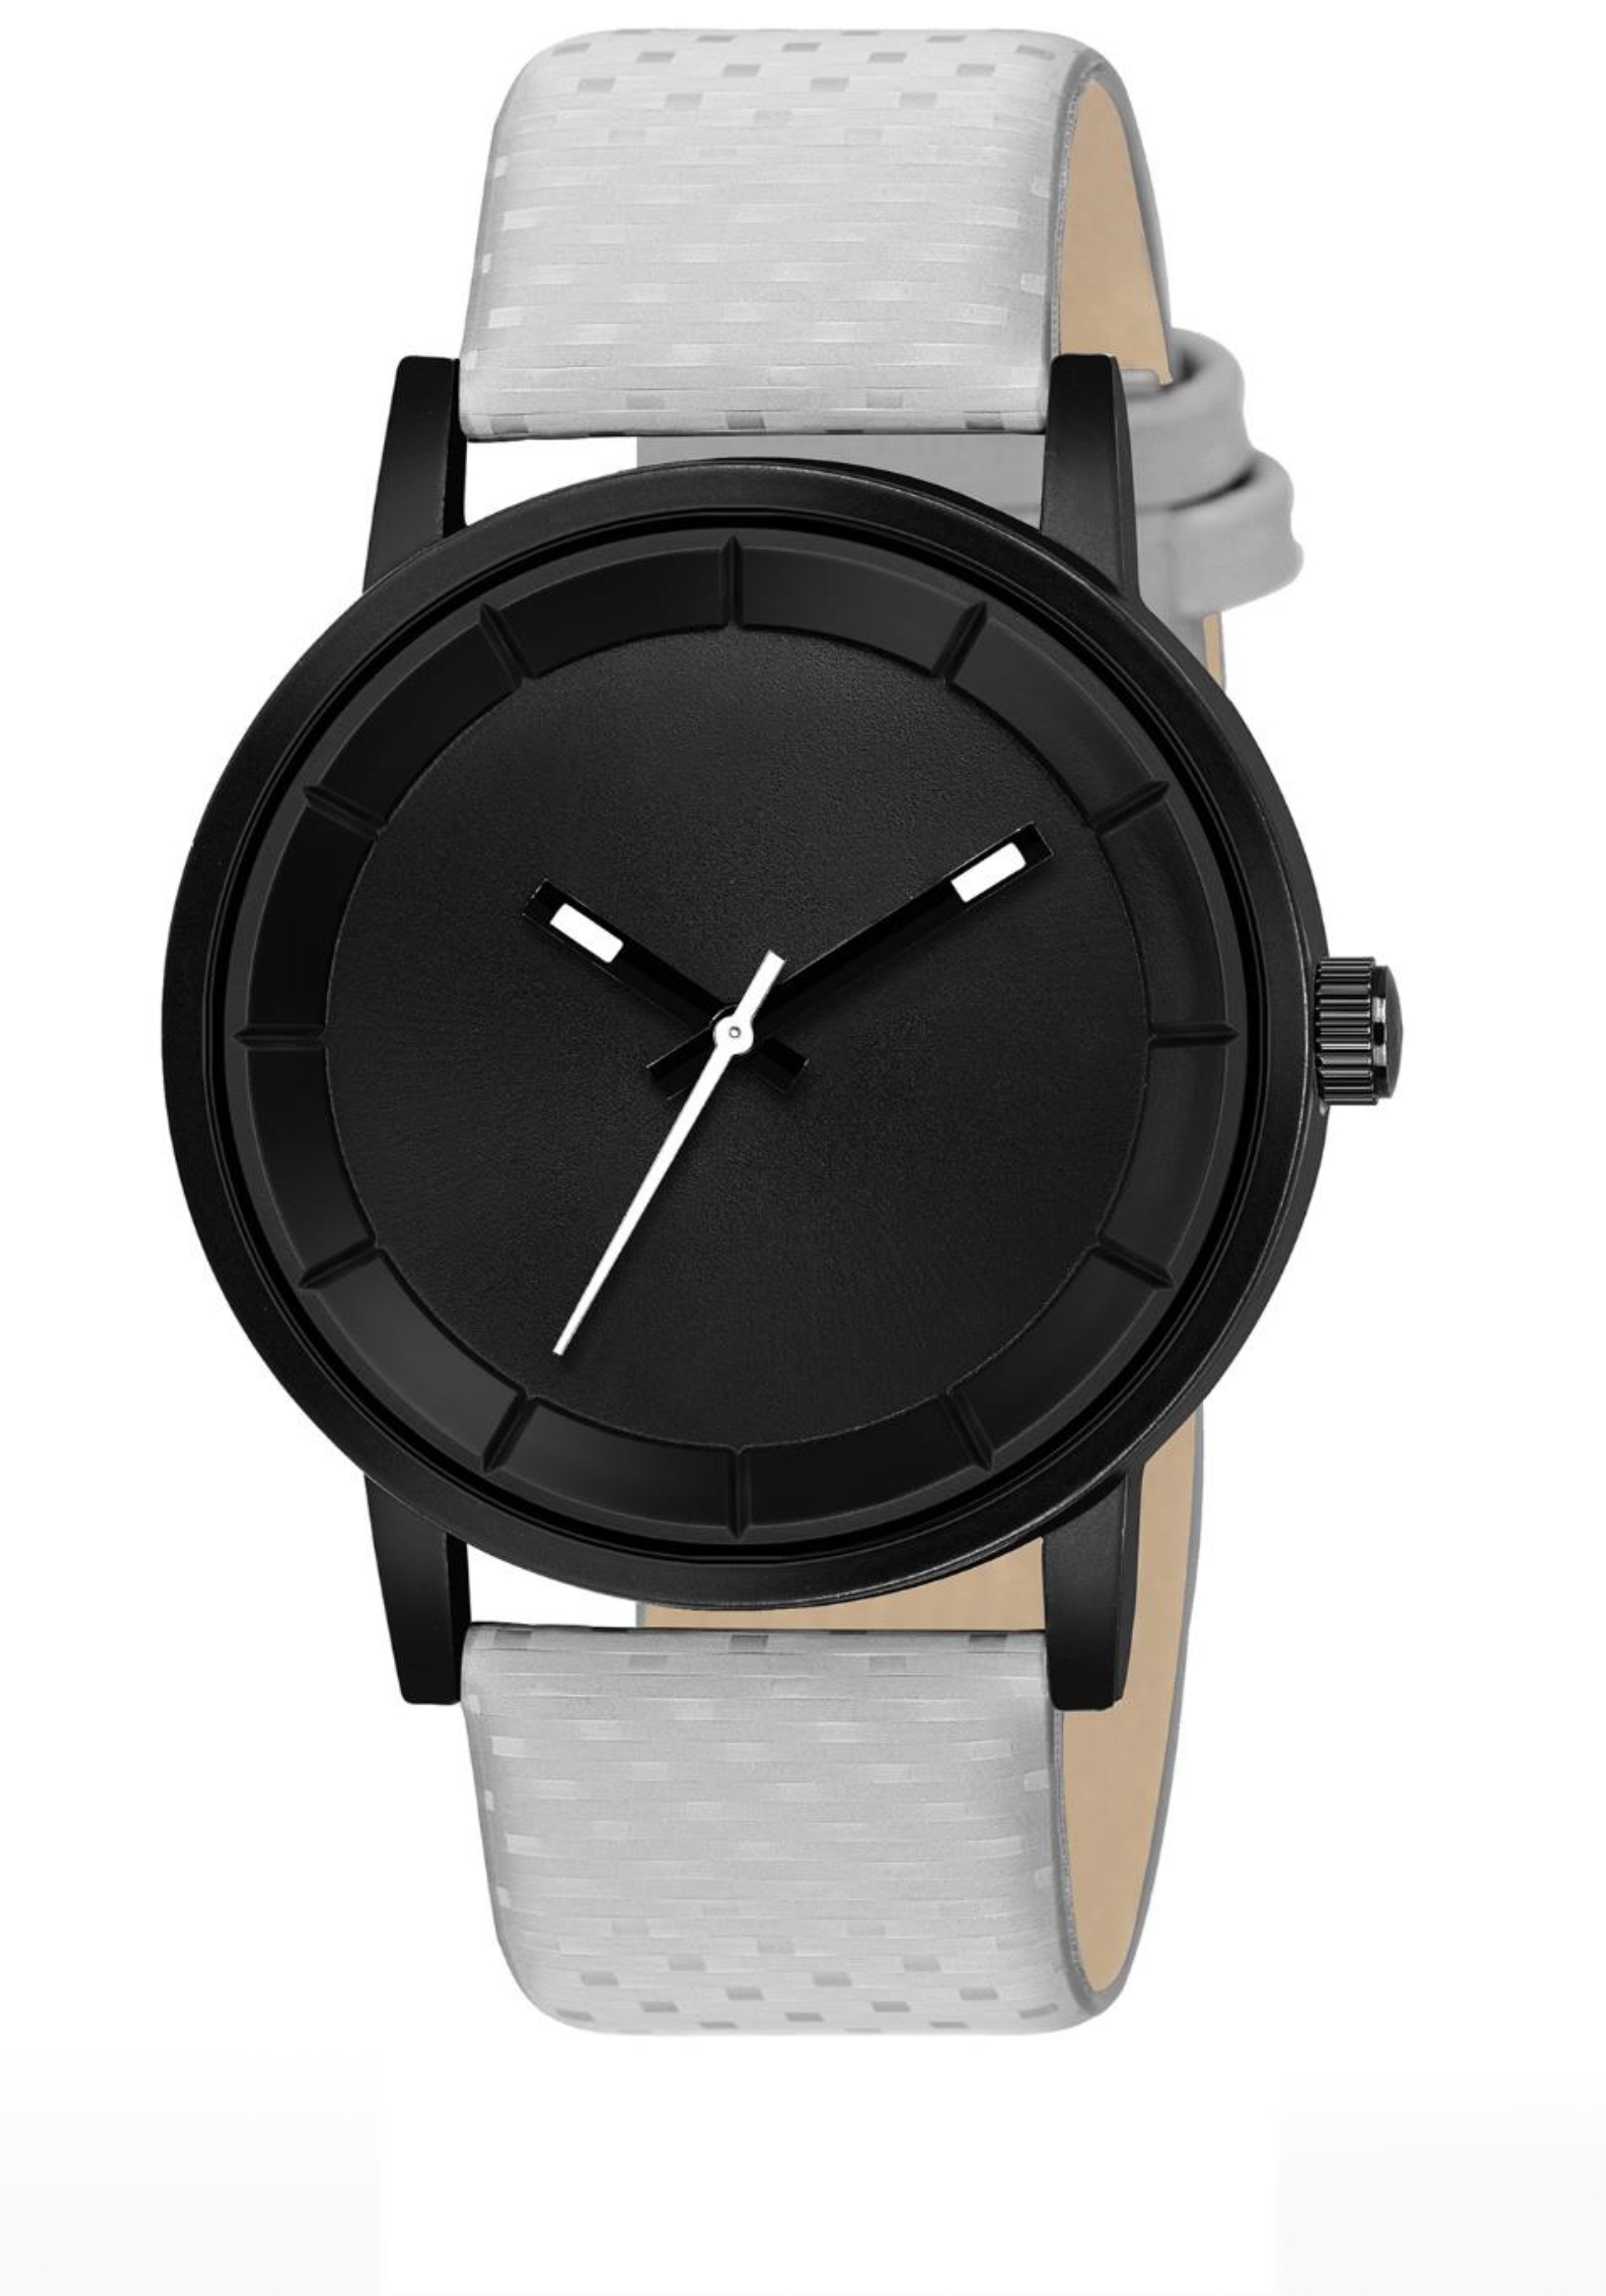 Fashion Now New Look Formal Men Wrist Watch (Black)